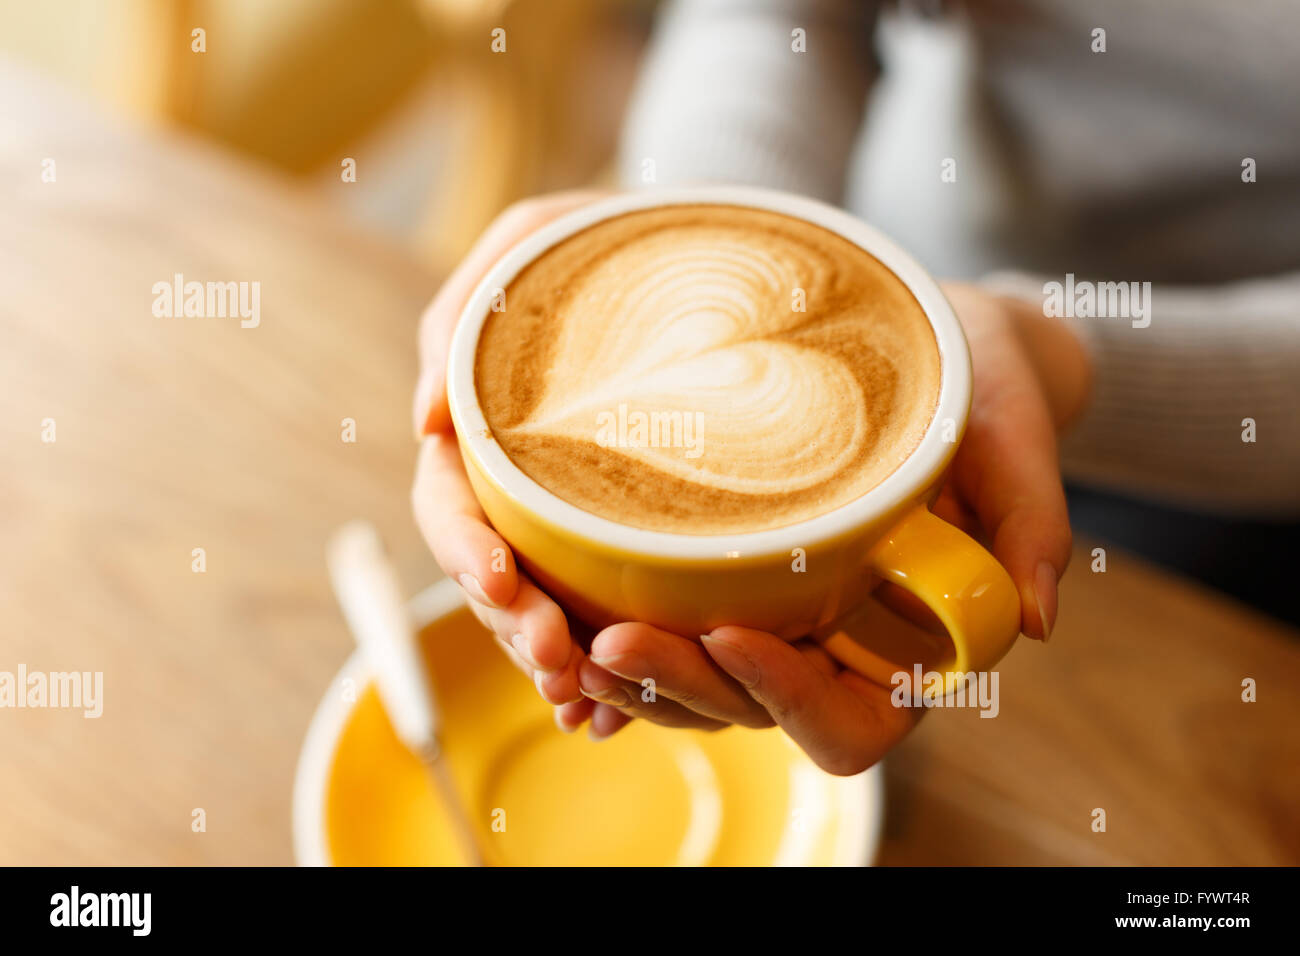 lady's hands holding cup with sth heart-shaped - Stock Image